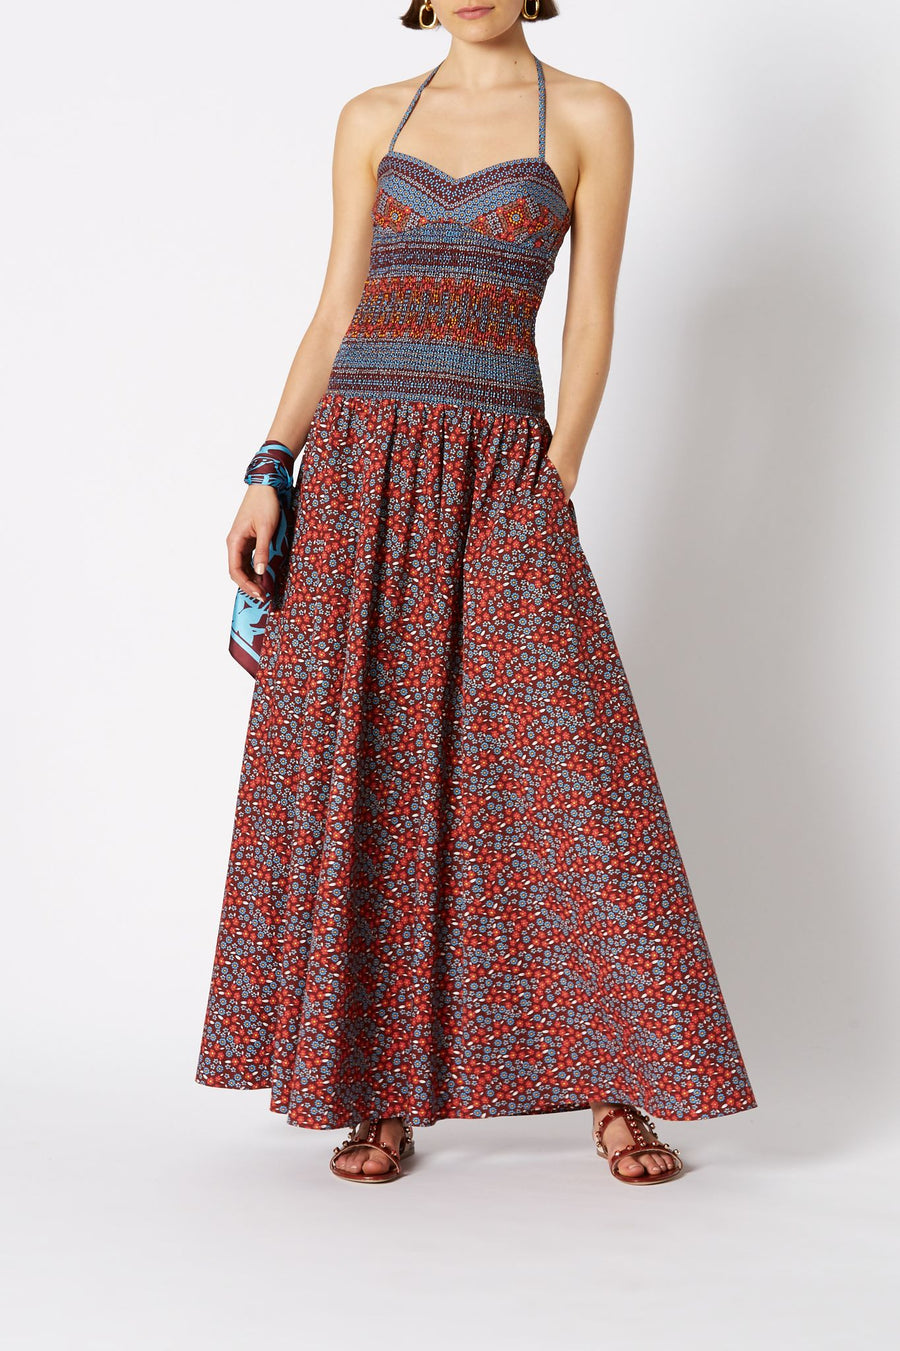 fb-COTTON FLORAL DRESS, shoestring straps, tight around waist and flares with long skirt to ankle, color ruby